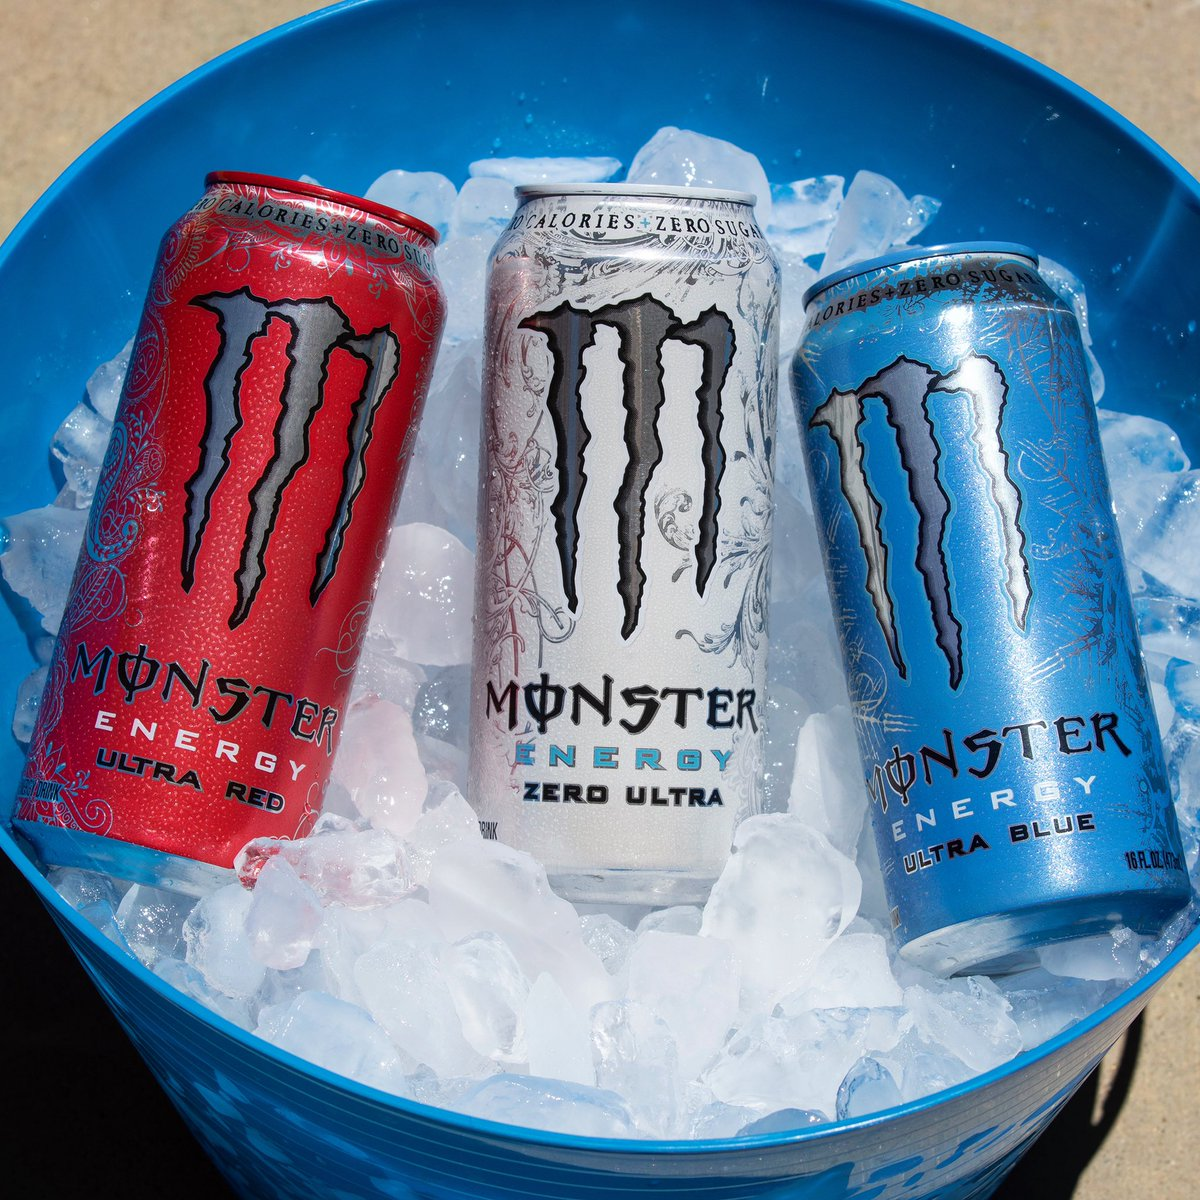 Today's a red, white and blue kind of day 🇺🇸 #4thofJuly #MonsterEnergy https://t.co/VKIV8cYOns